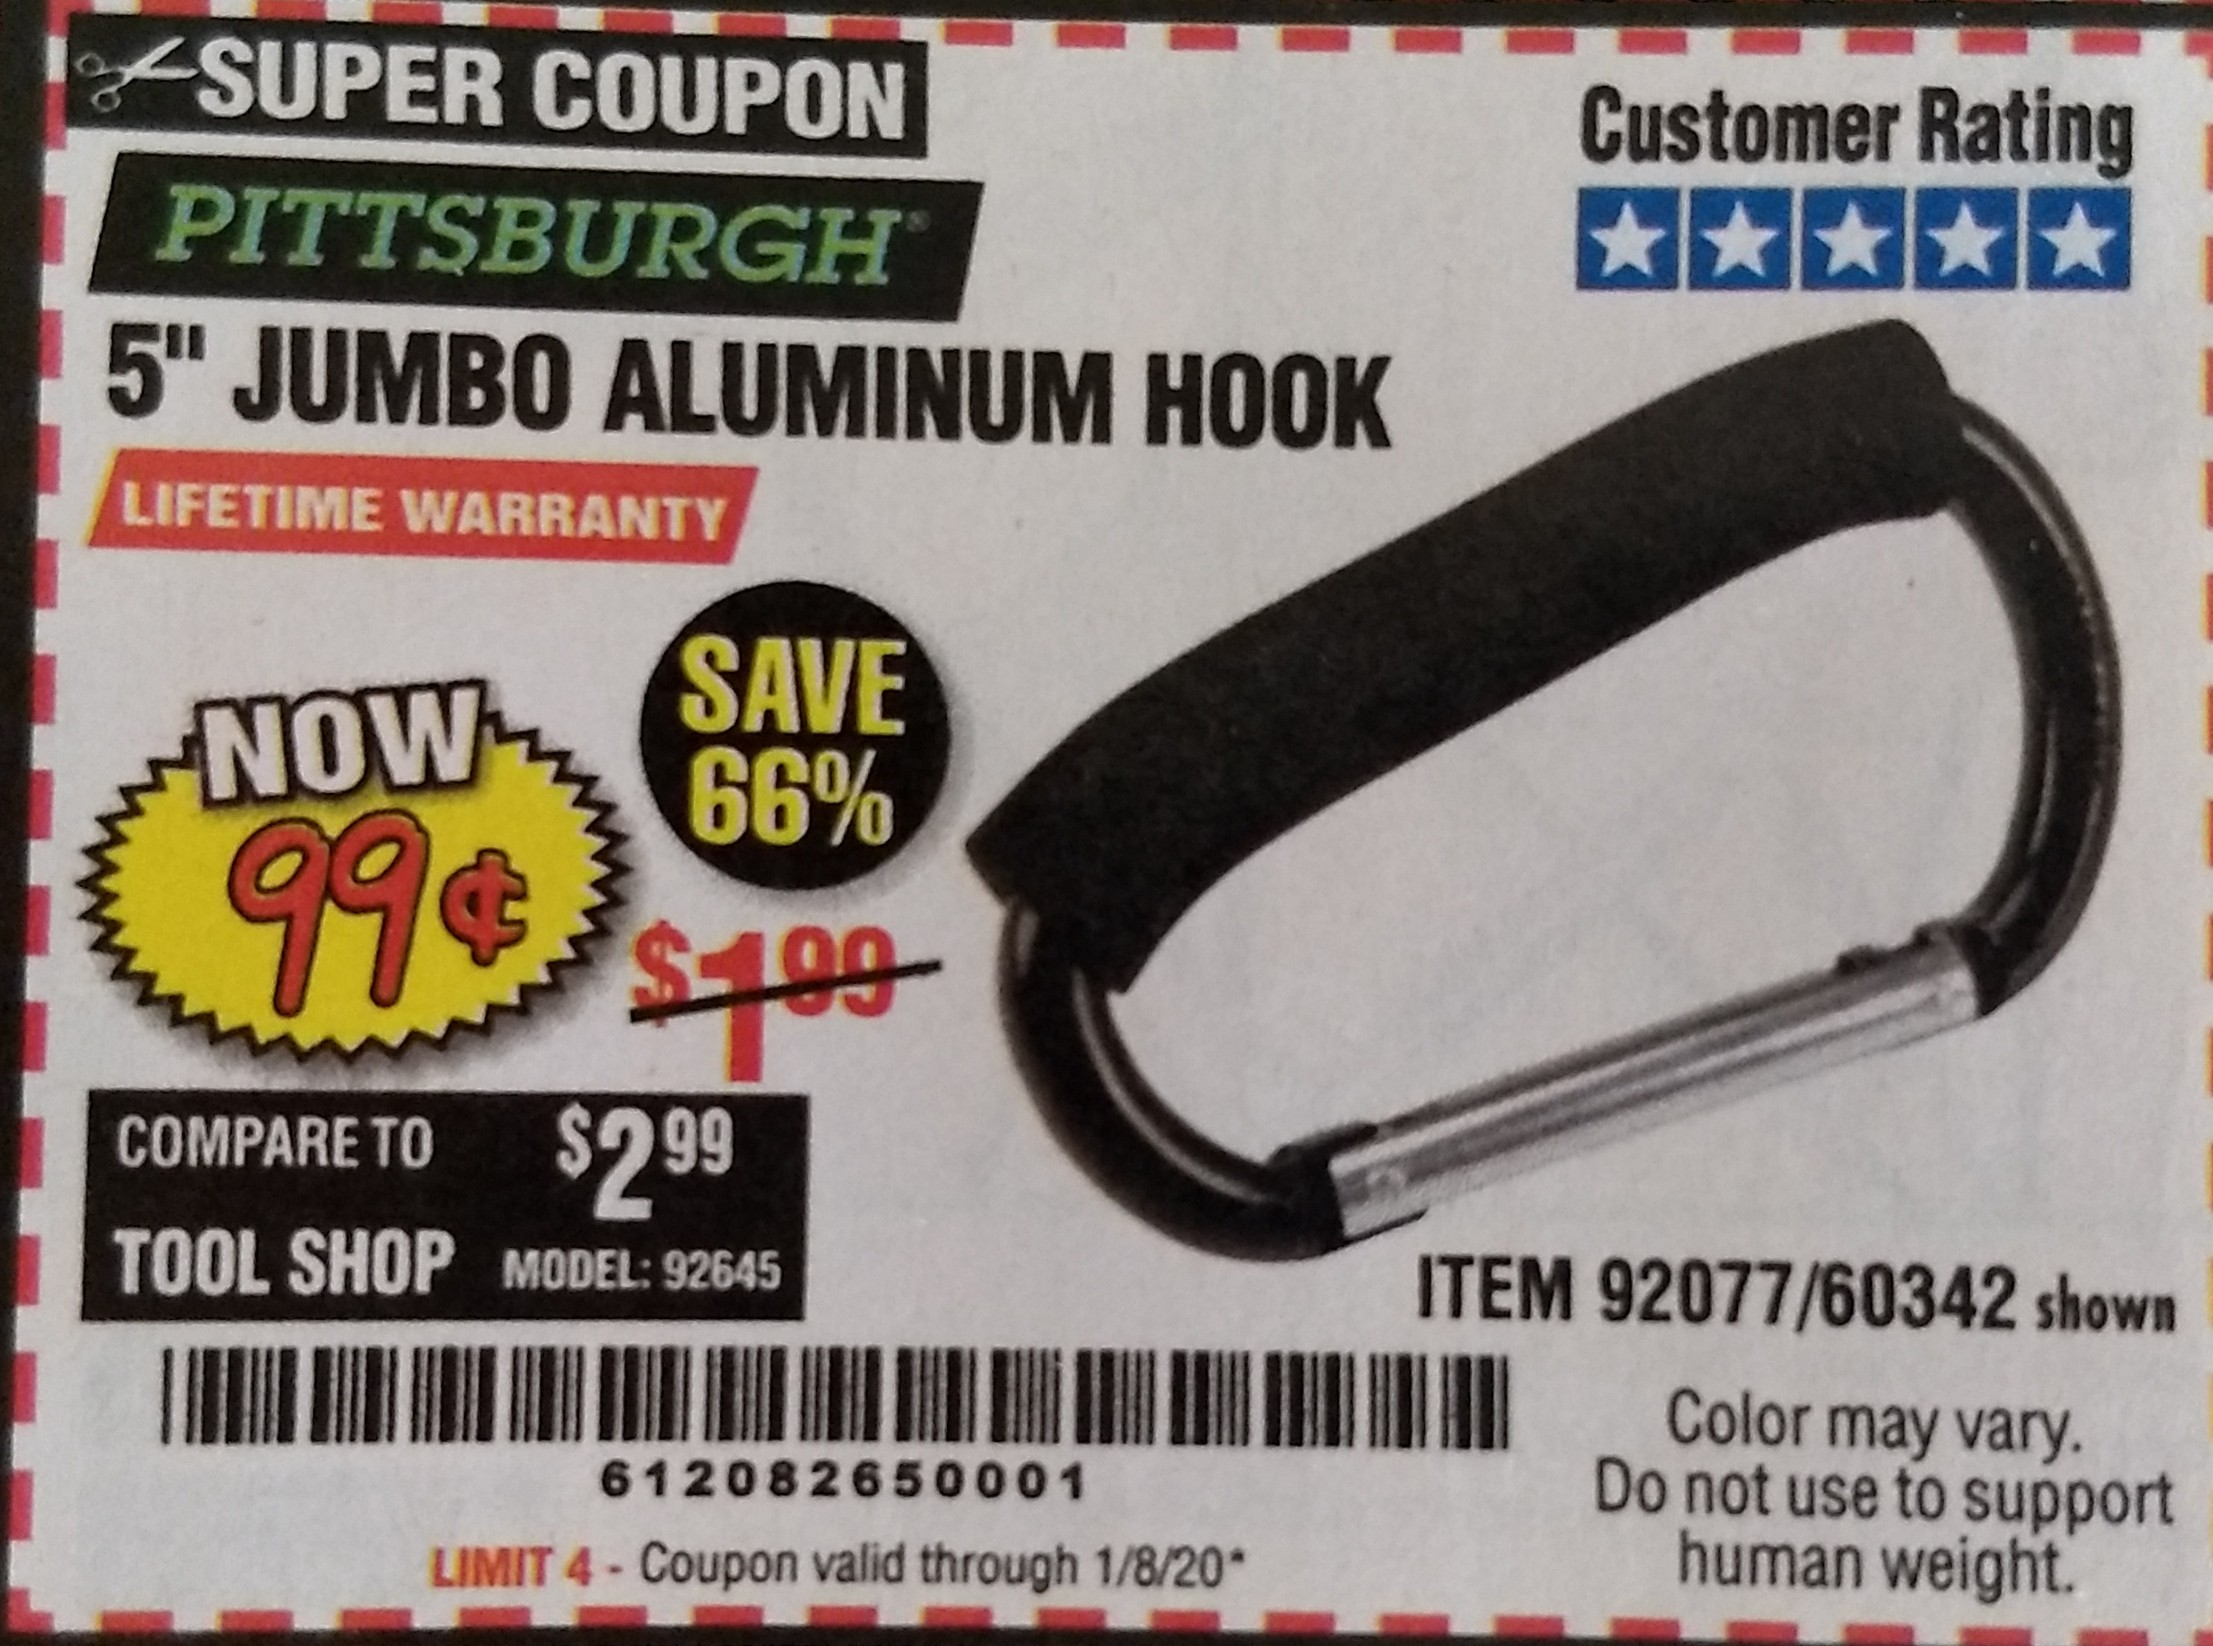 "www.hfqpdb.com - 5"" JUMBO ALUMINUM HOOK Lot No. 60342/92077"